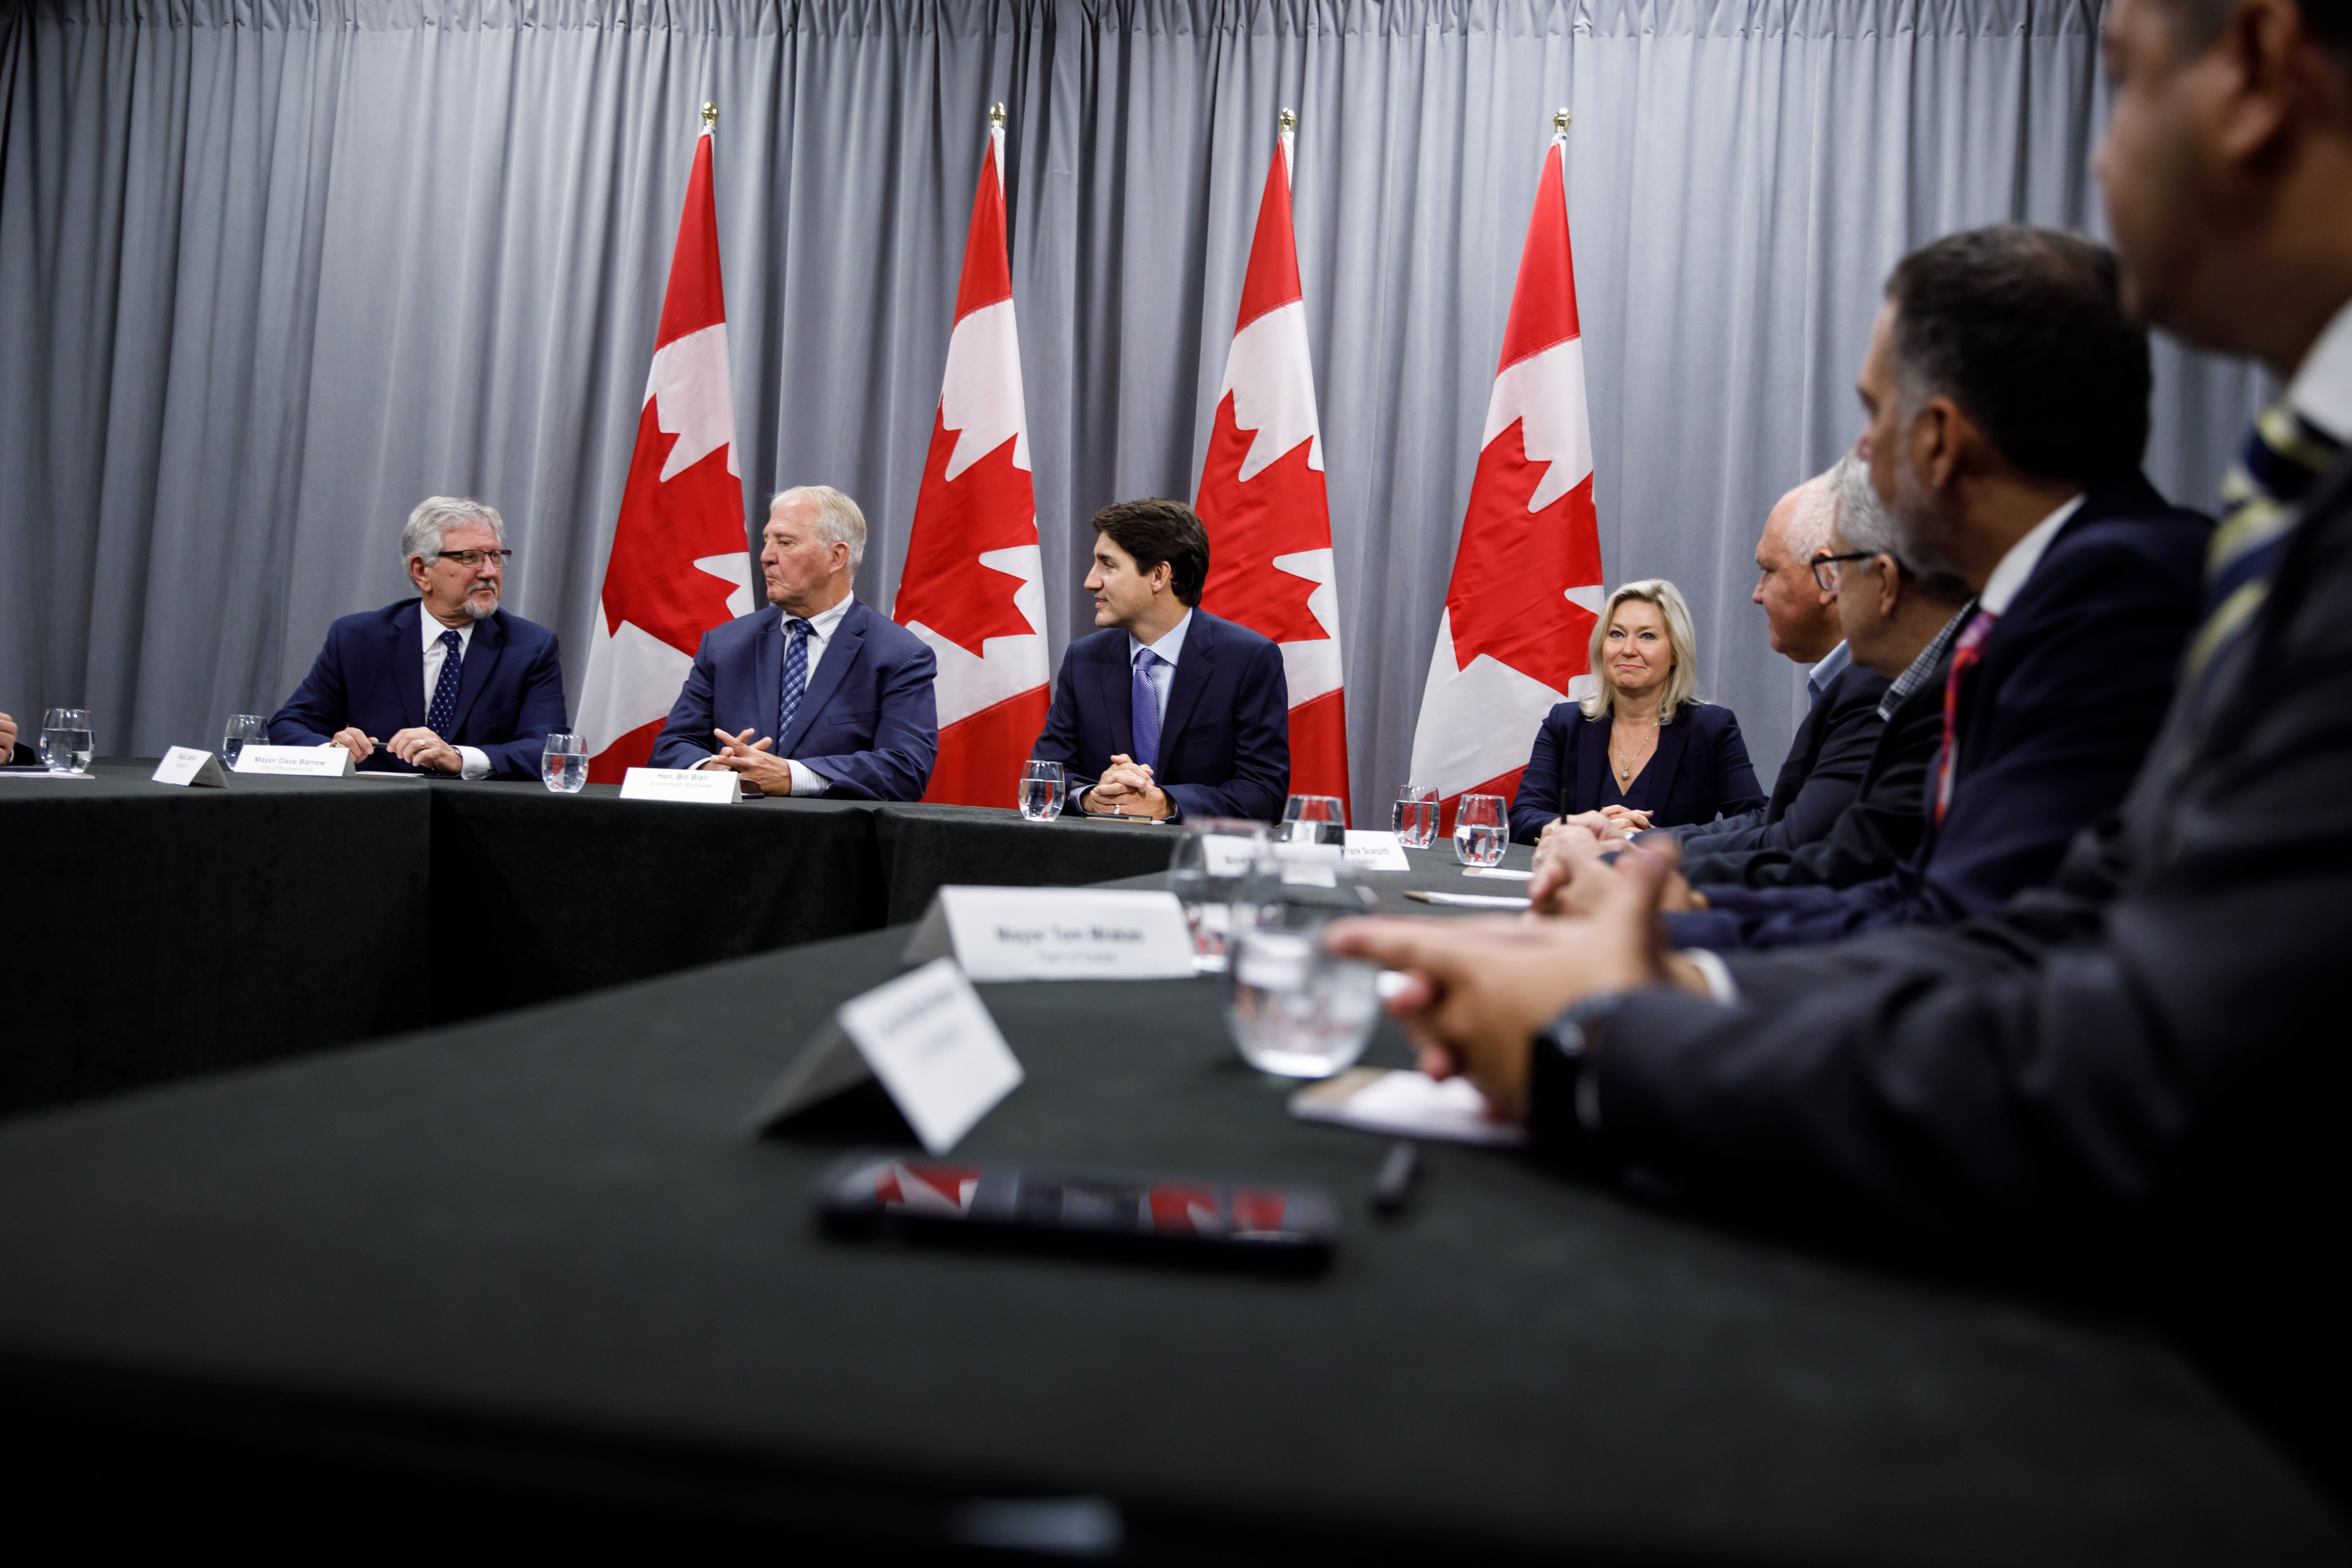 Trudeau's cabinet FORCING through gun laws as quickly as possible